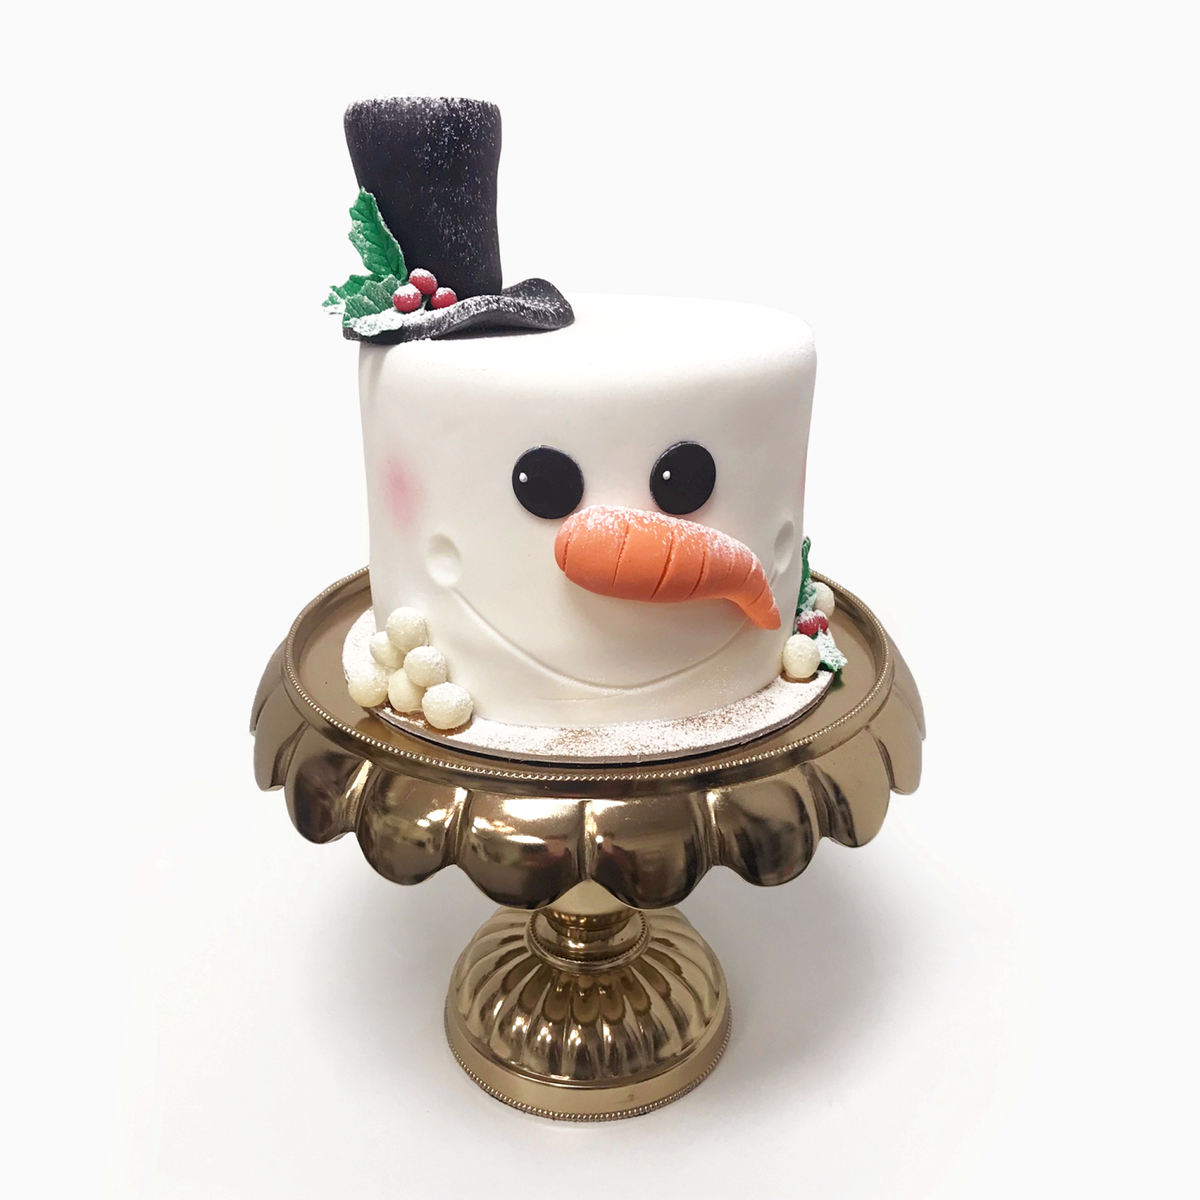 Whippt Desserts - Auction Cake Dec 18 2